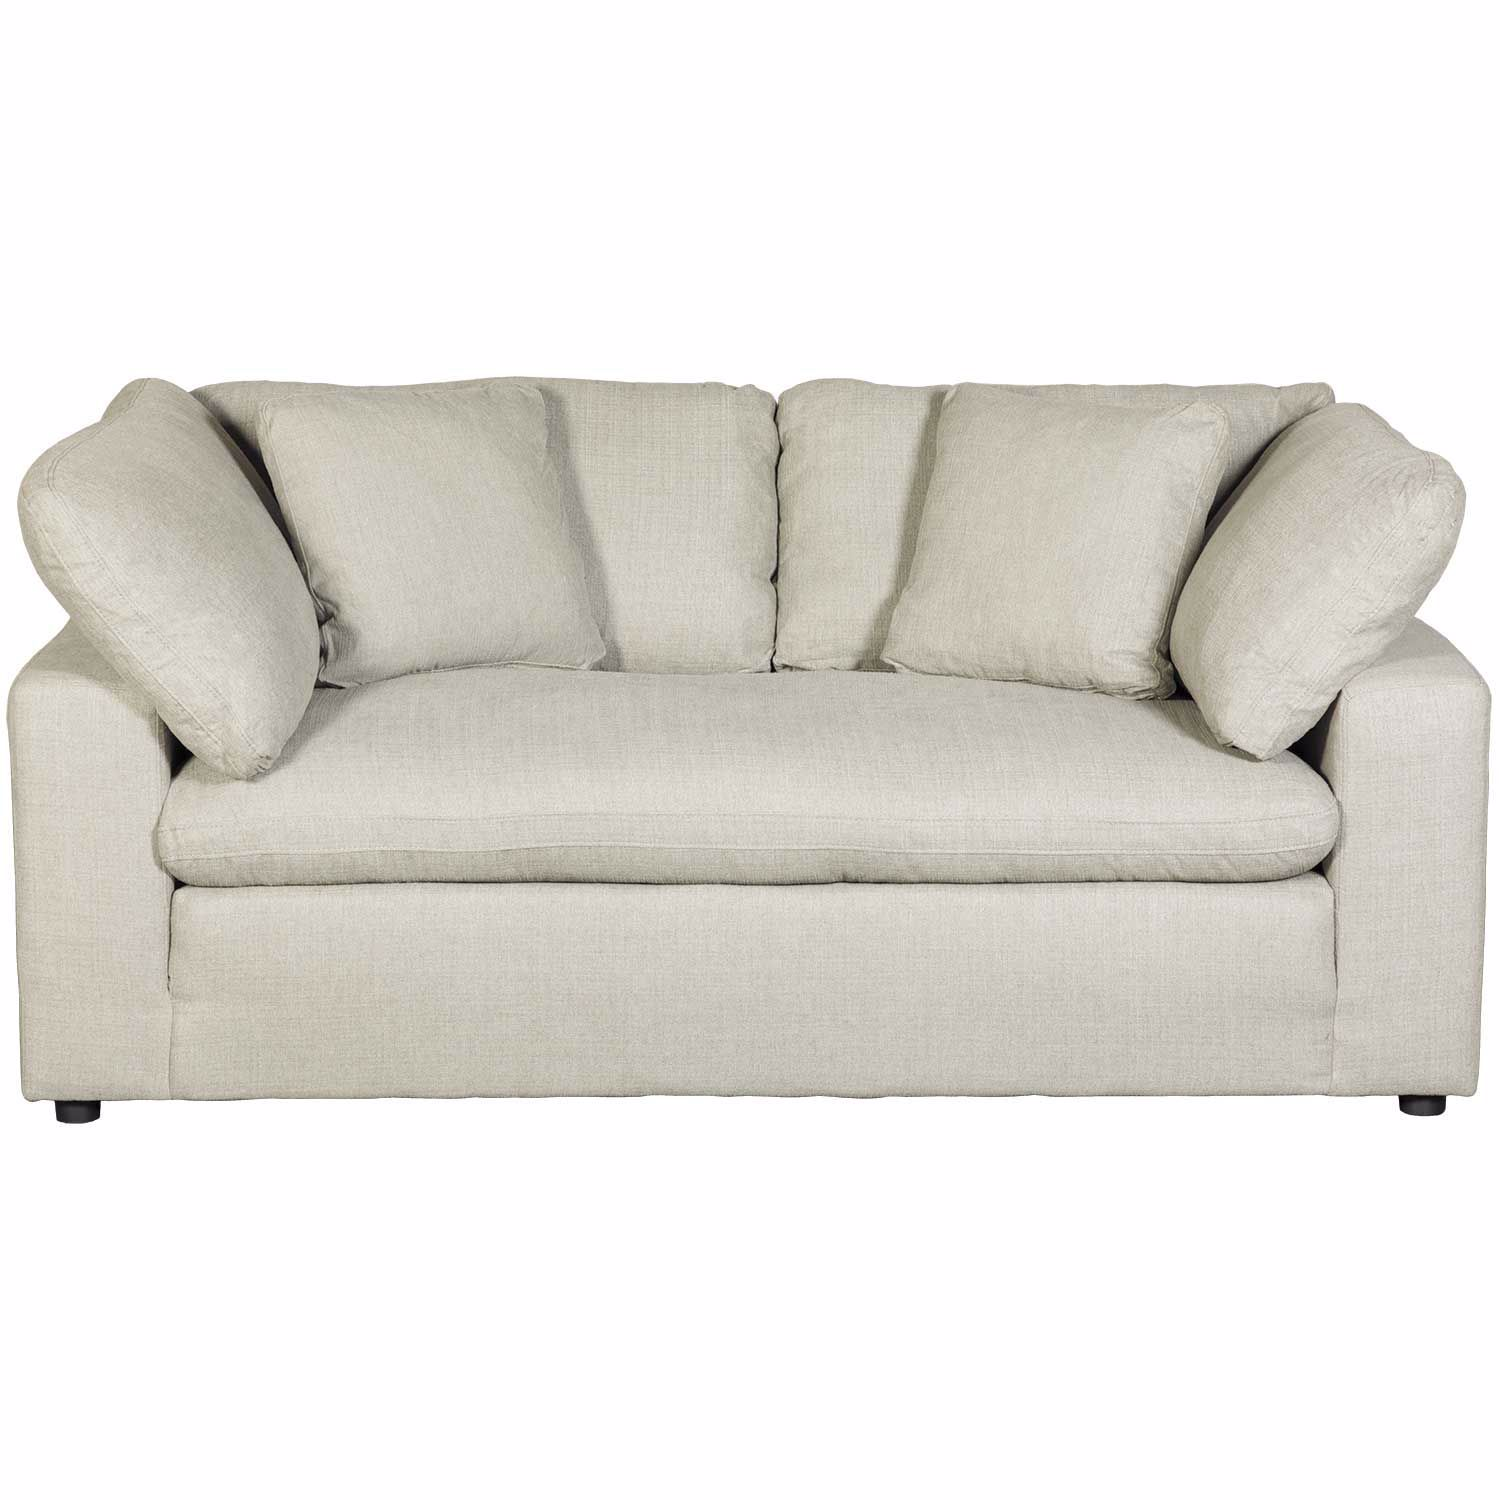 Picture of Cloud 9 Loveseat